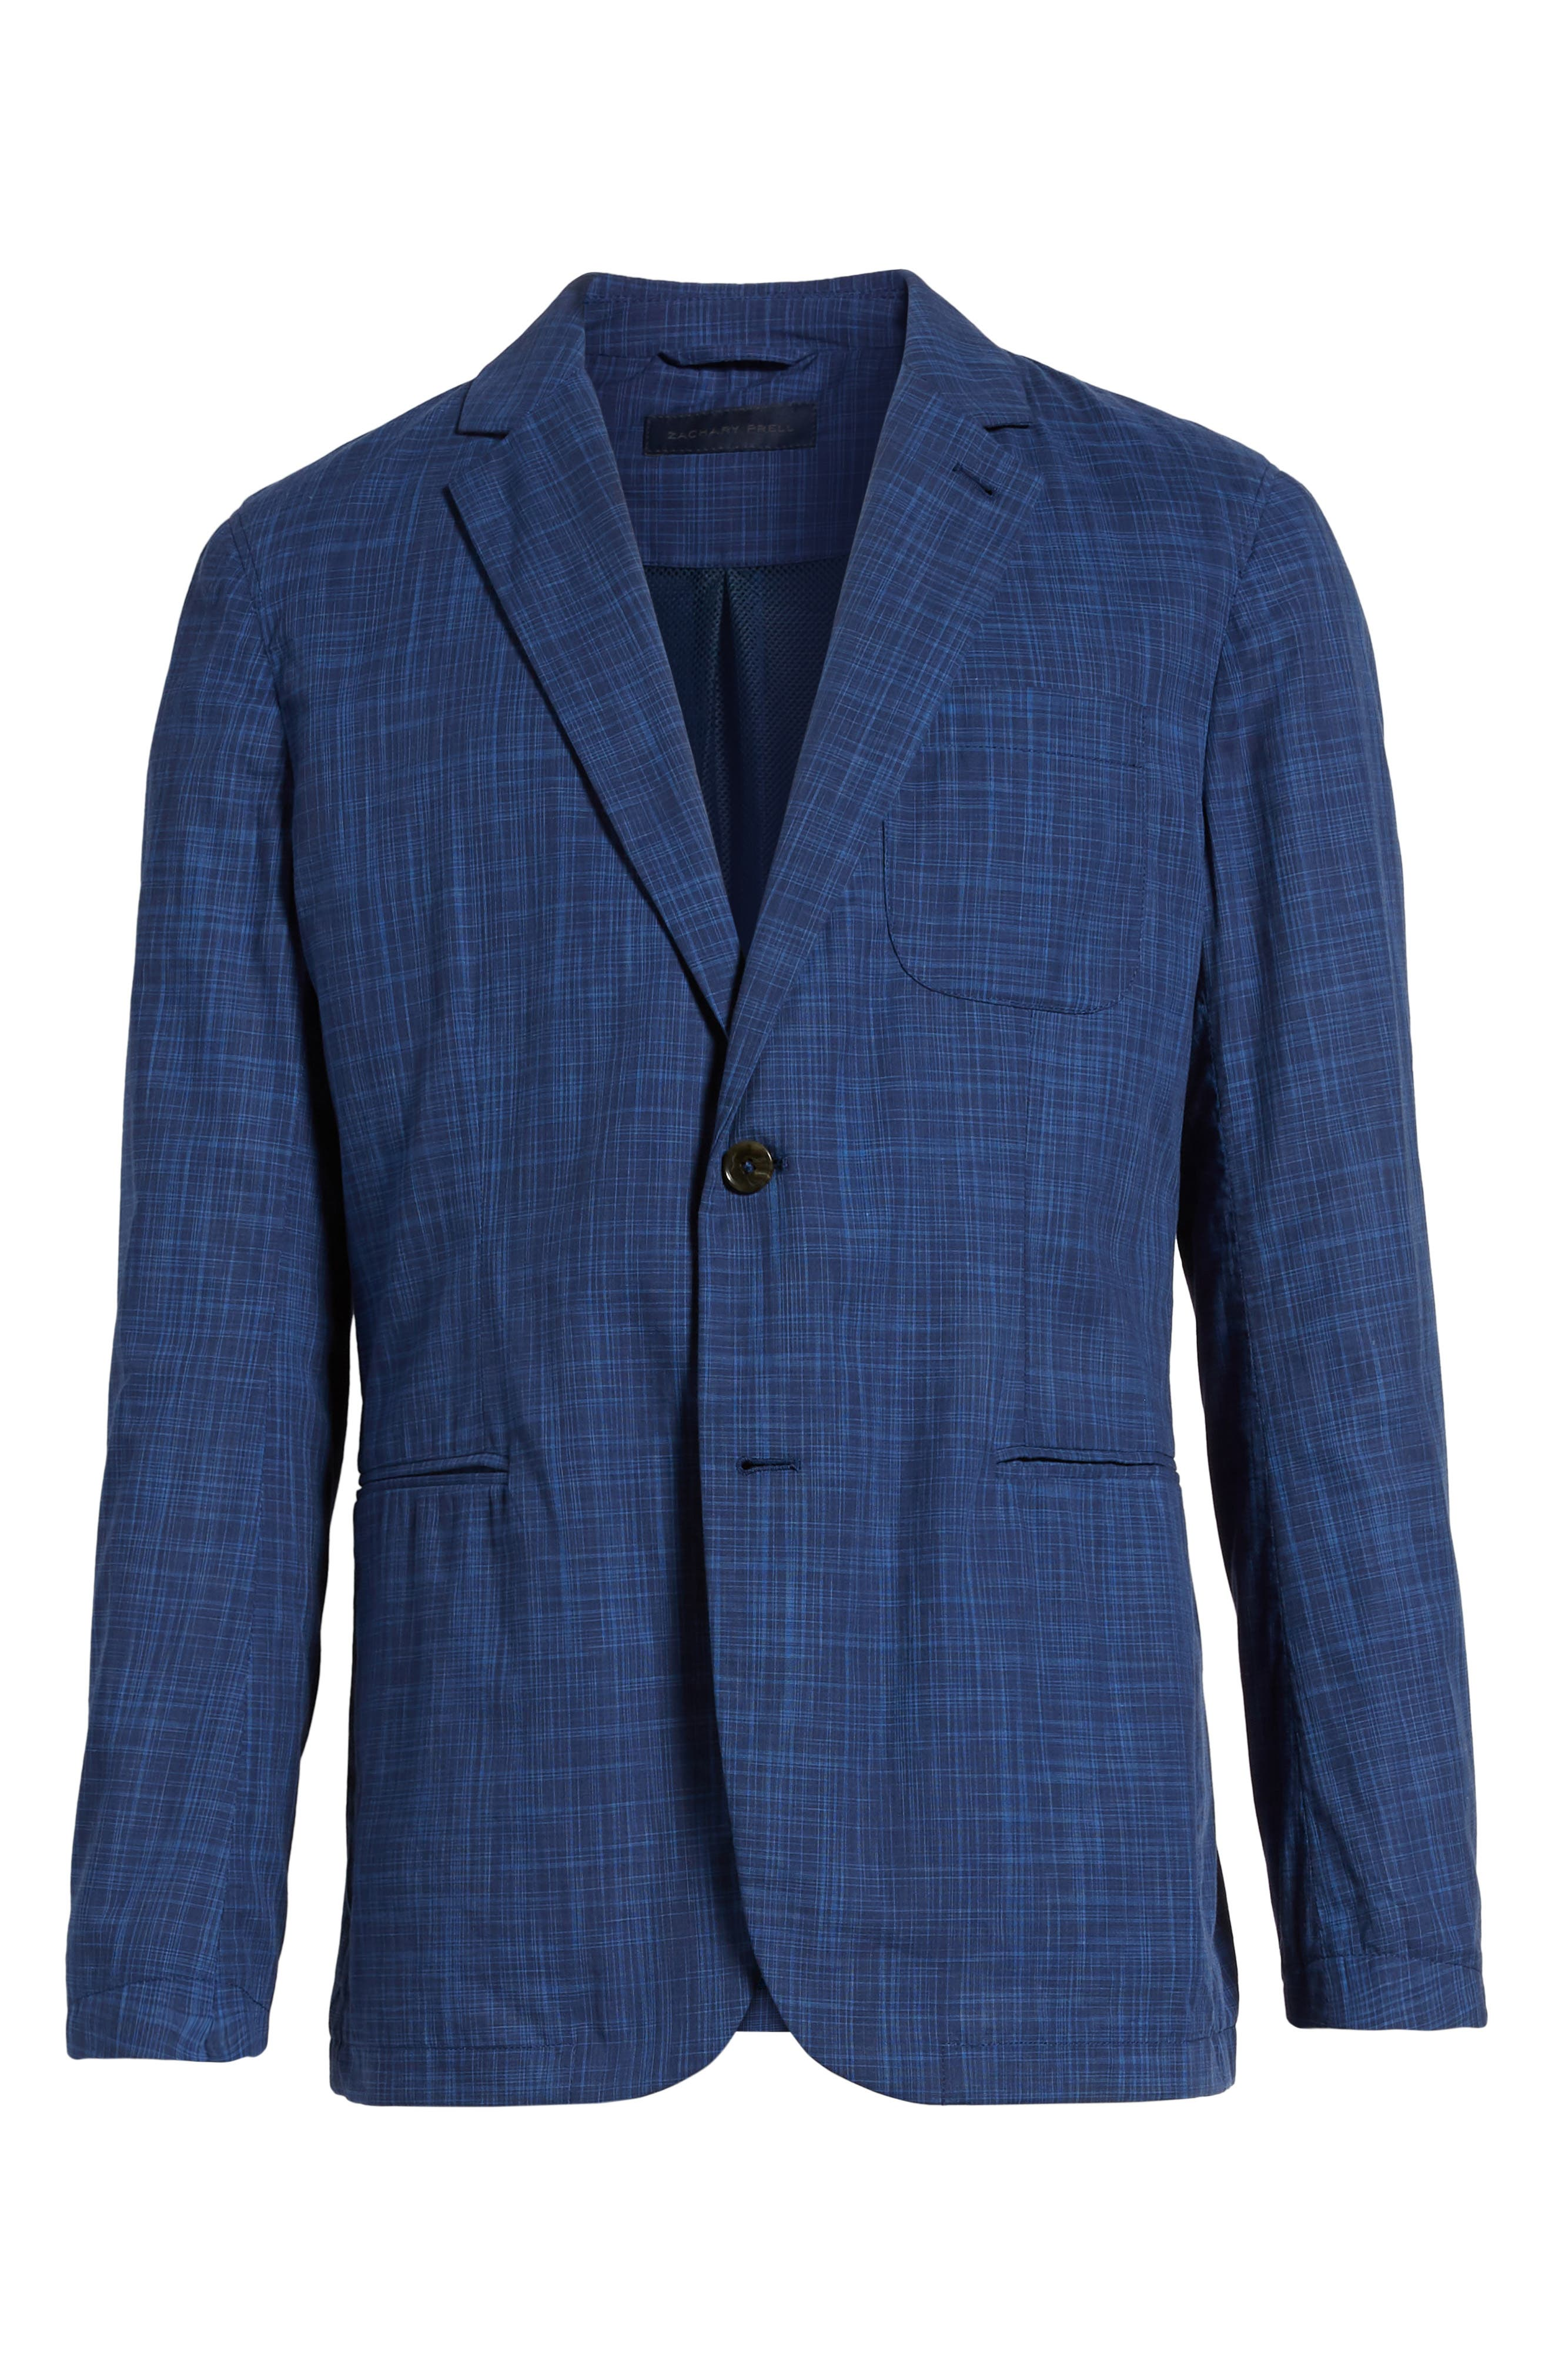 Belmont Regular Fit Sport Coat,                             Alternate thumbnail 5, color,                             400